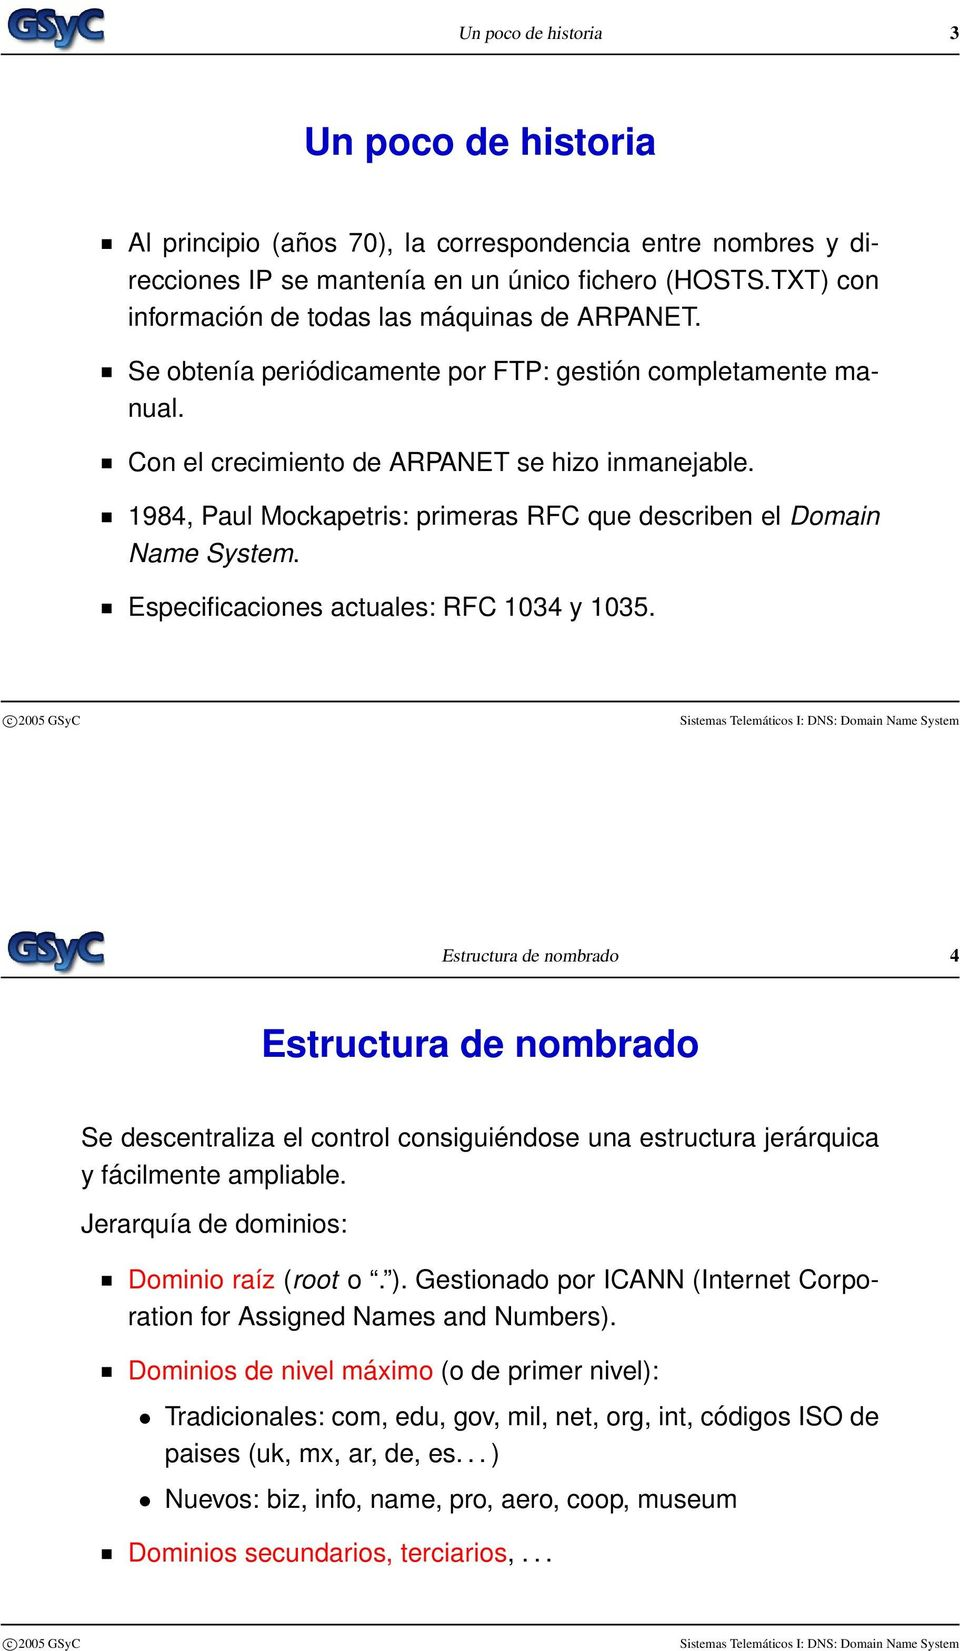 1984, Paul Mockapetris: primeras RFC que describen el Domain Name System. Especificaciones actuales: RFC 1034 y 1035.